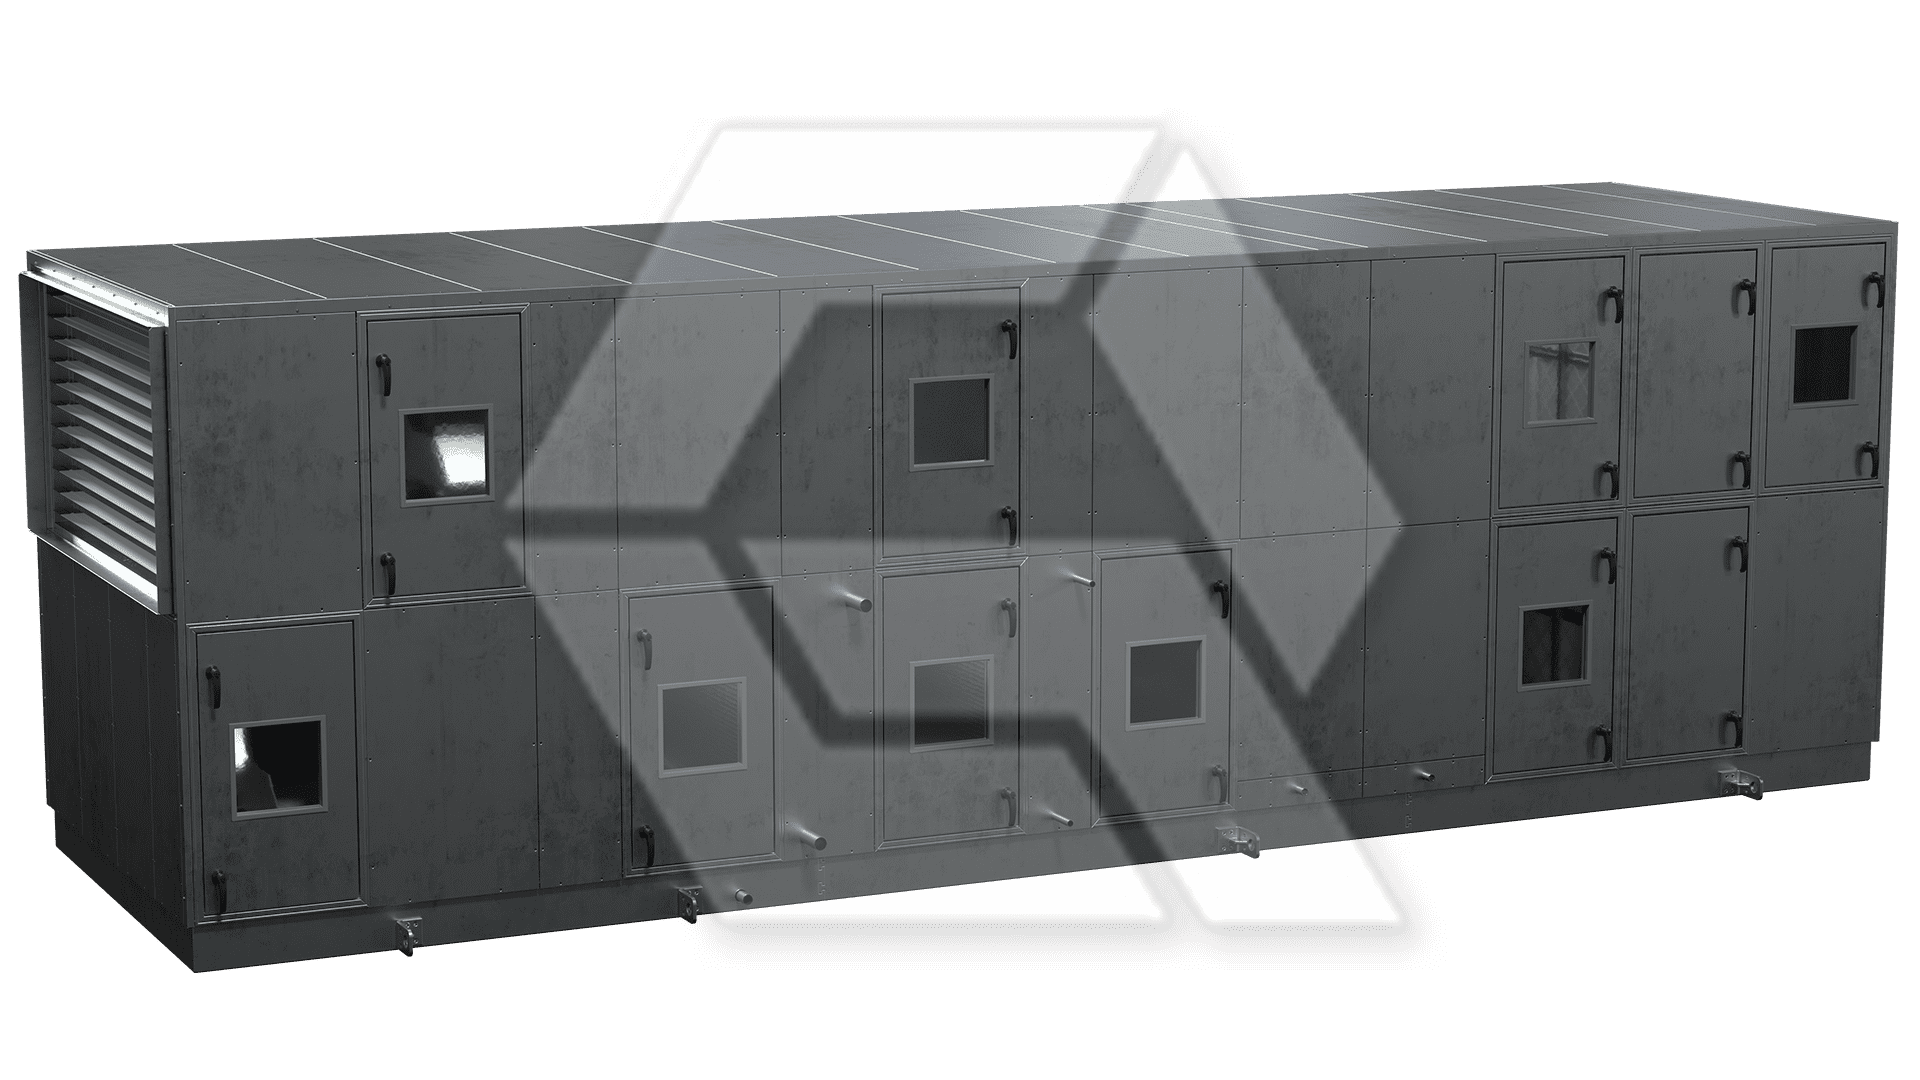 Innovent AHU 8088359 Closed View